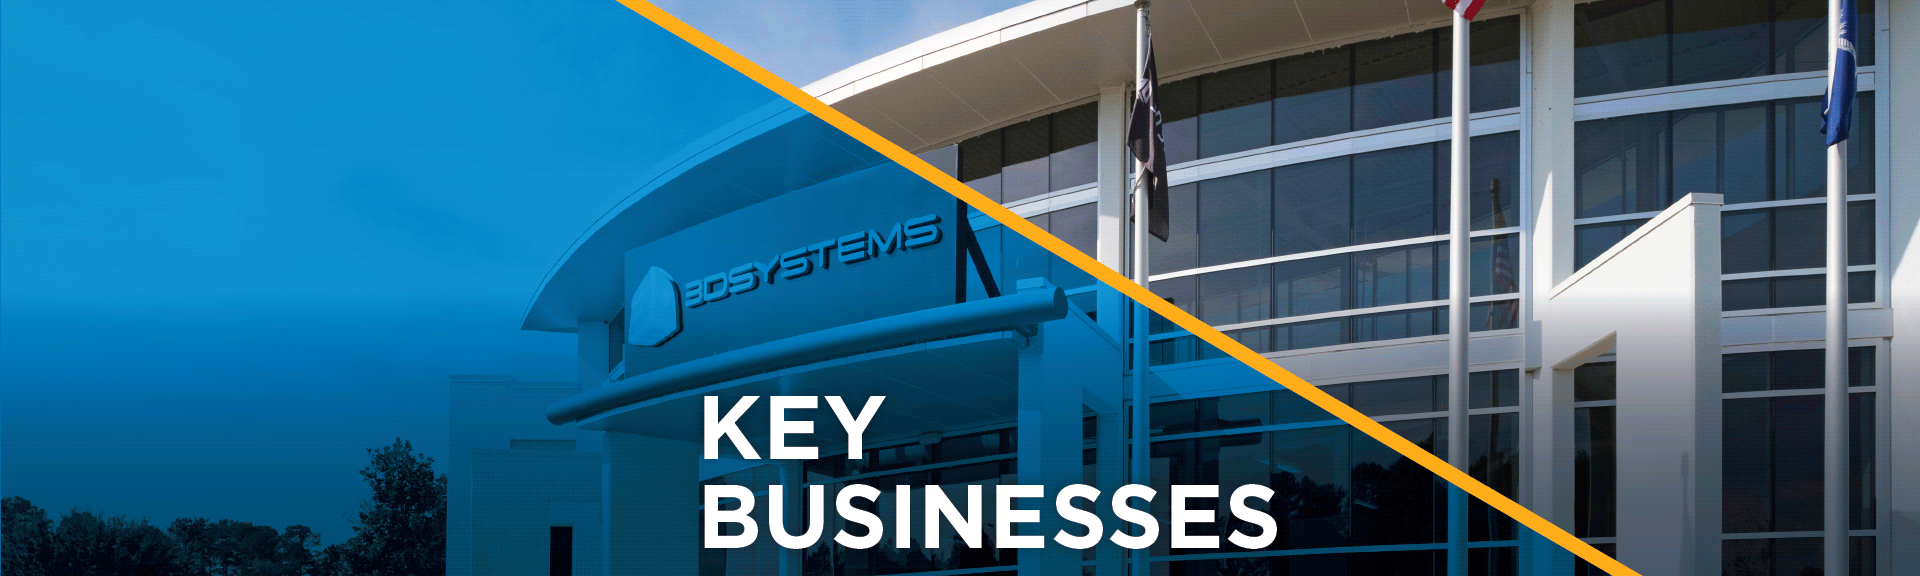 KeyBusinesses